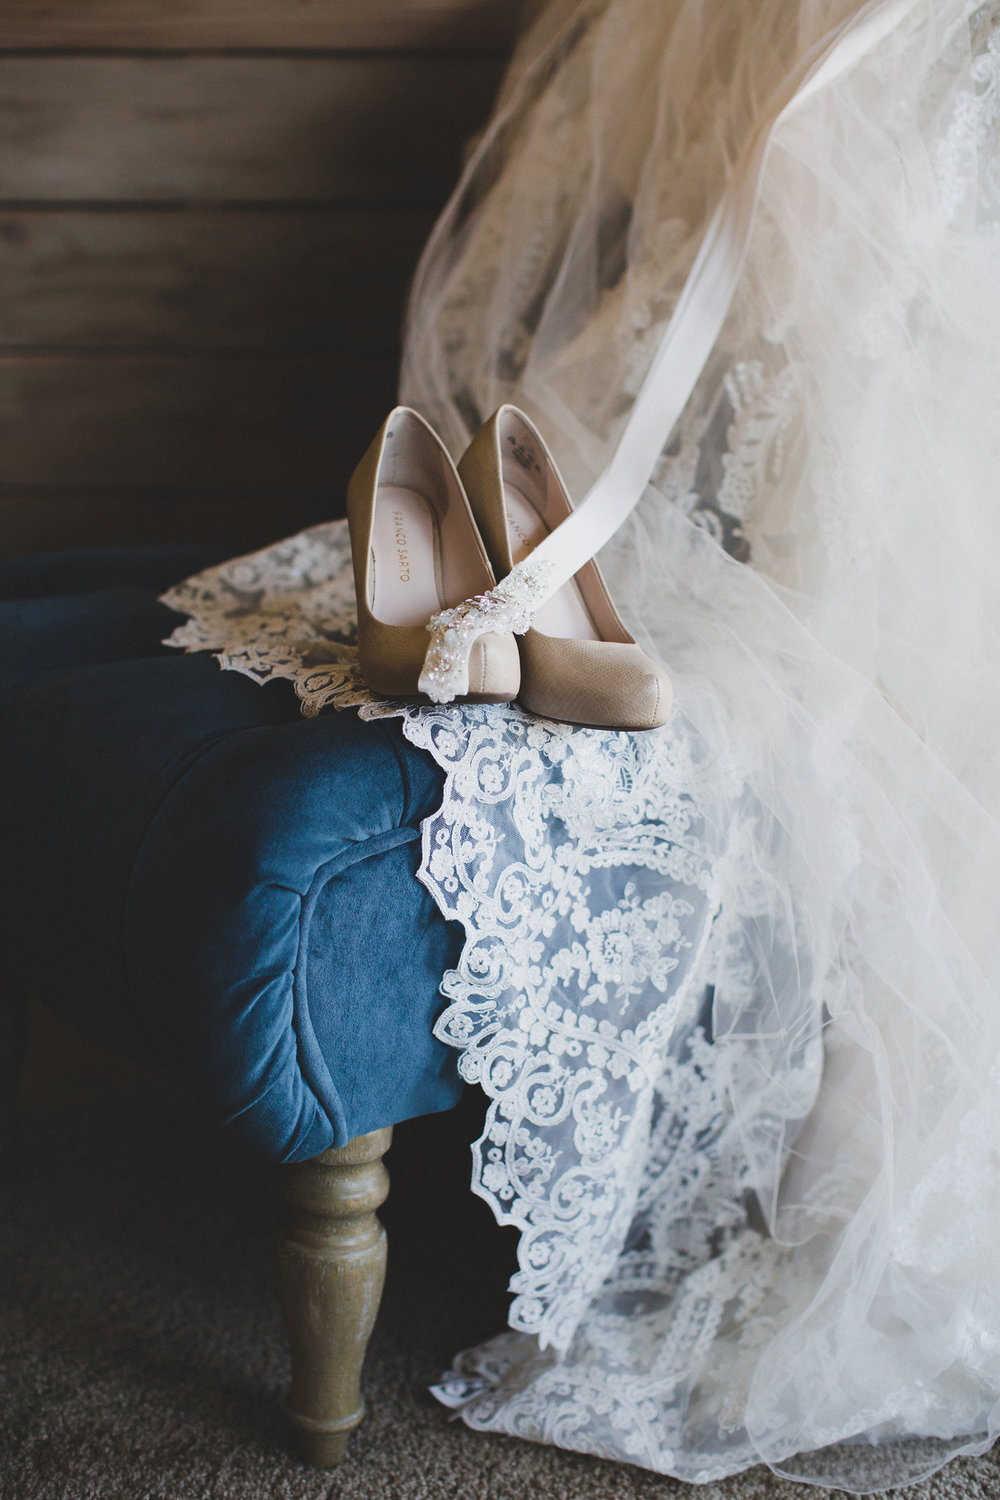 Tri Cities Photographer_Tri Cities Wedding Photographer_Jordan Edens Photography_My anniversary_Wedding dress_Wedding shoes 11